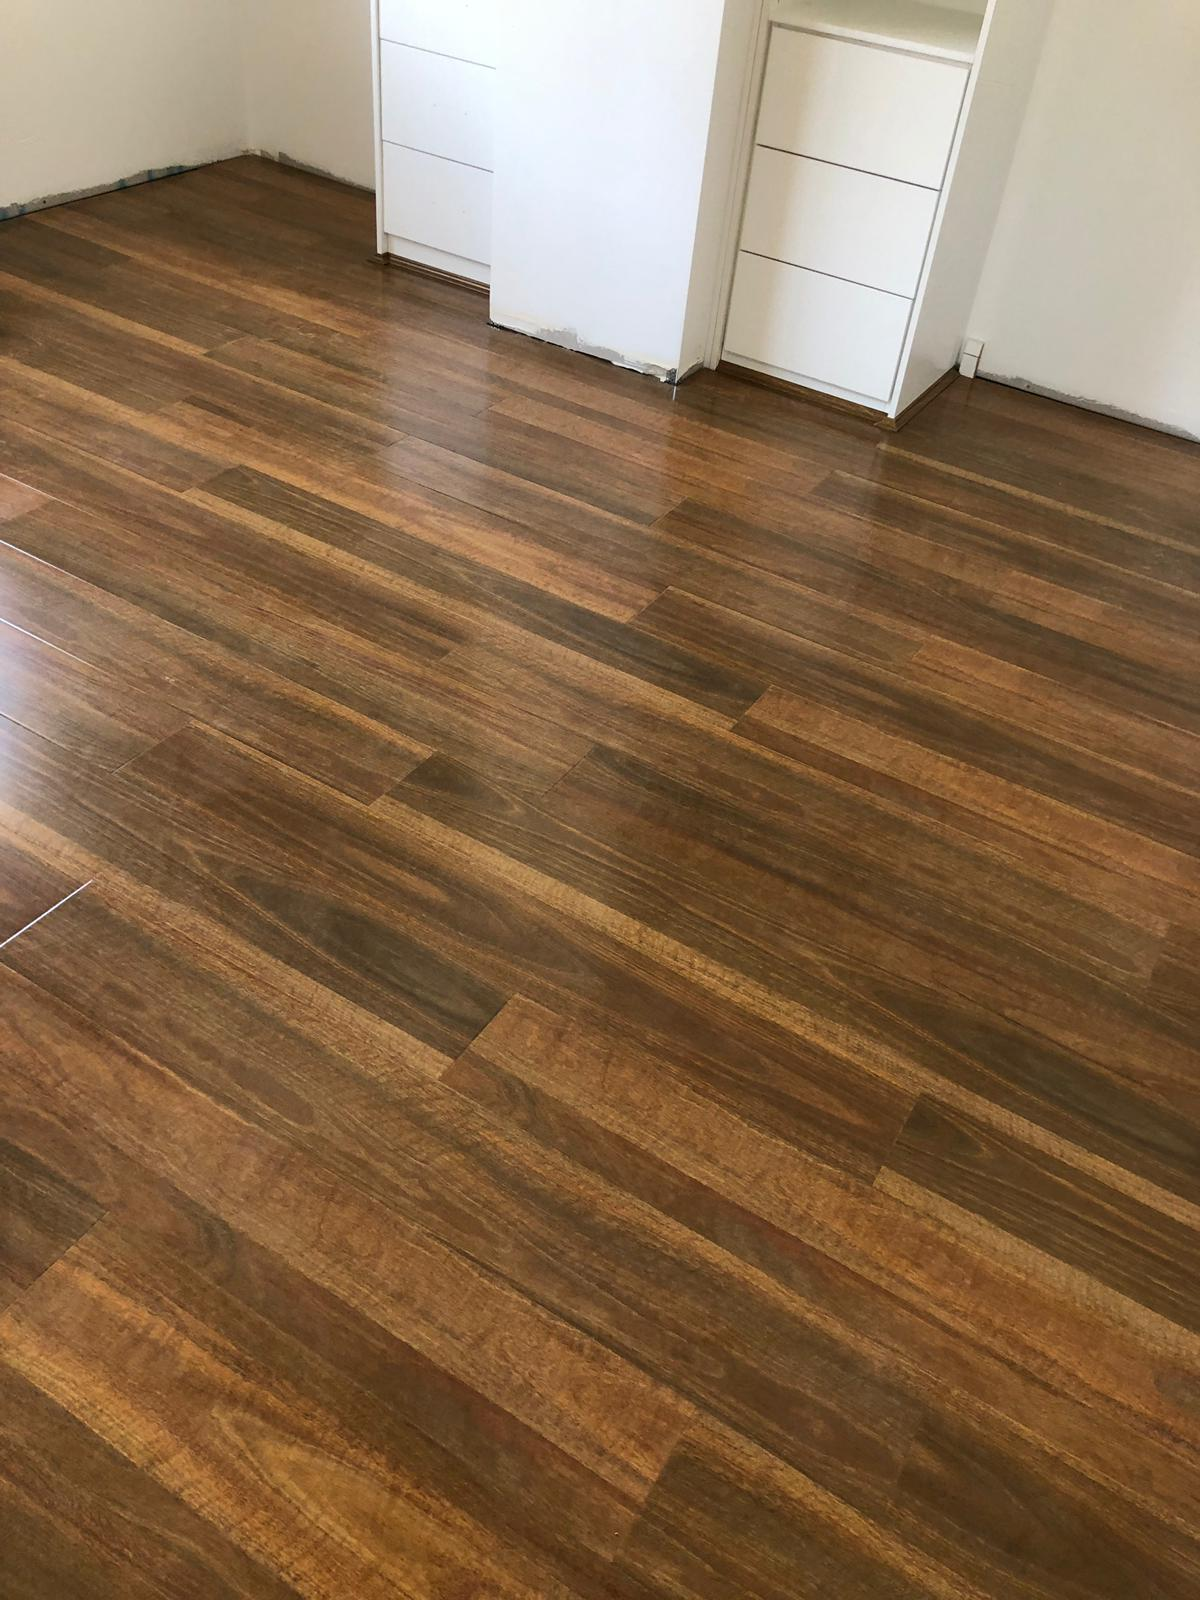 Spotted Gum 20932-1 - Tanoa Flooring 12mm Gloss Laminate | Advanced Flooring Services